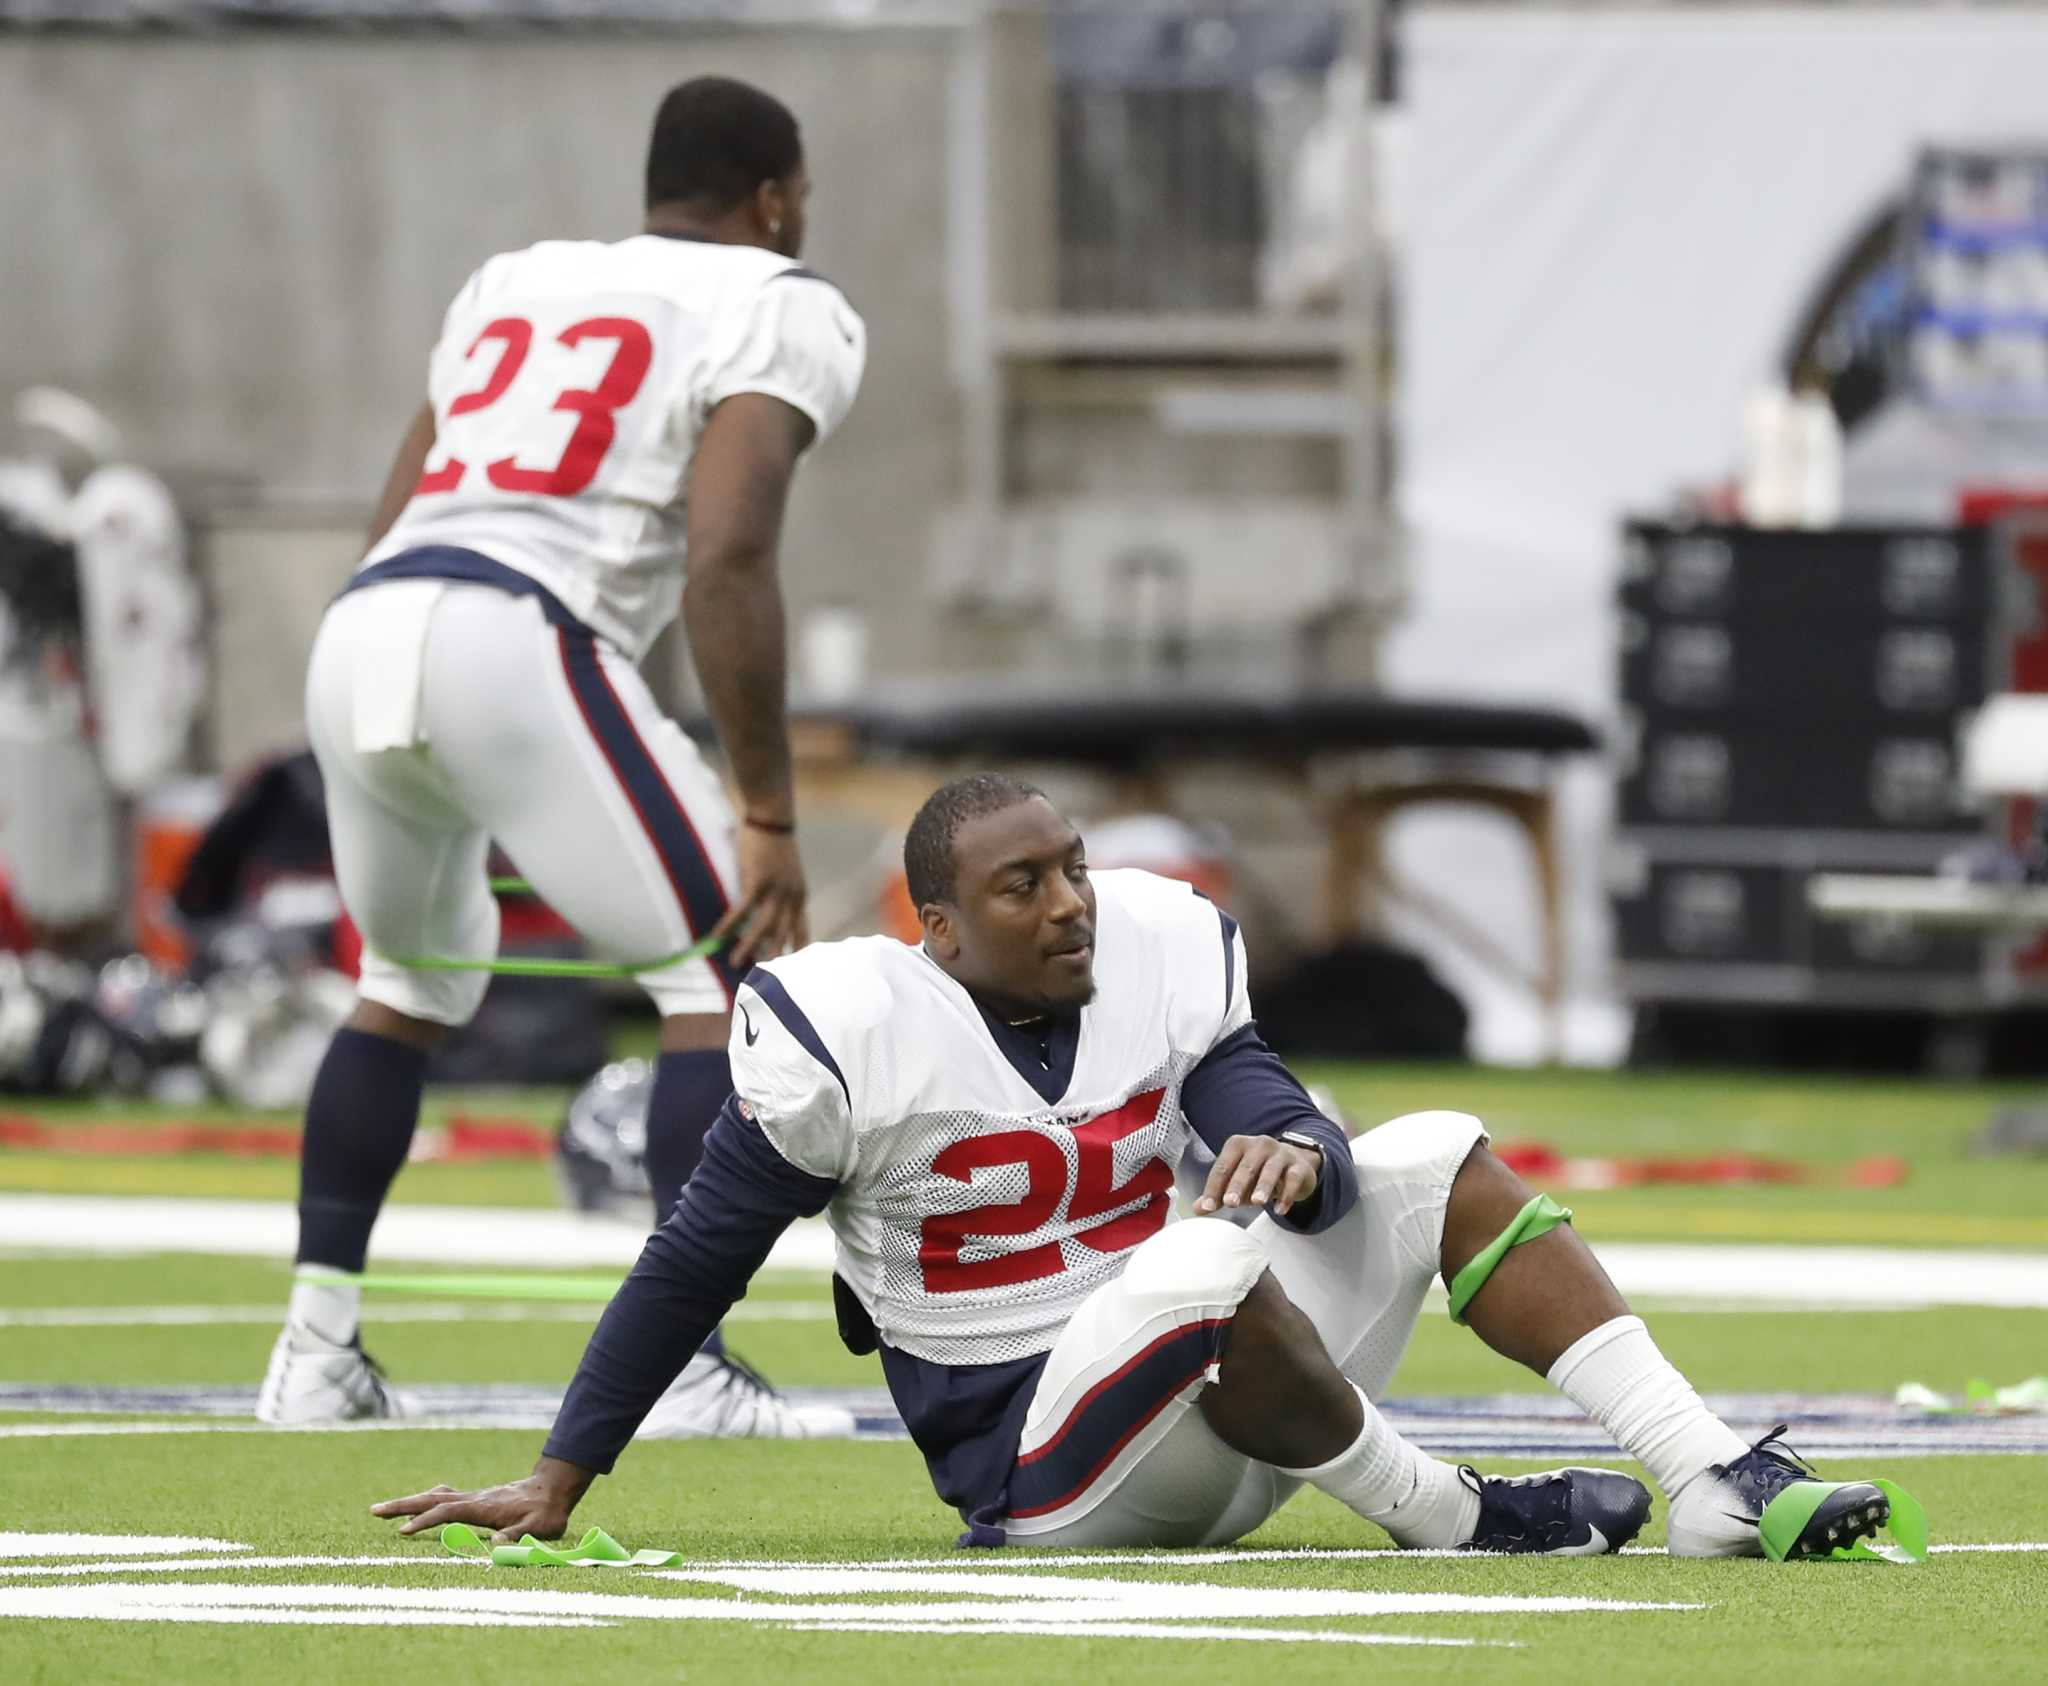 Texans RBs Carlos Hyde and Duke Johnson form productive tandem